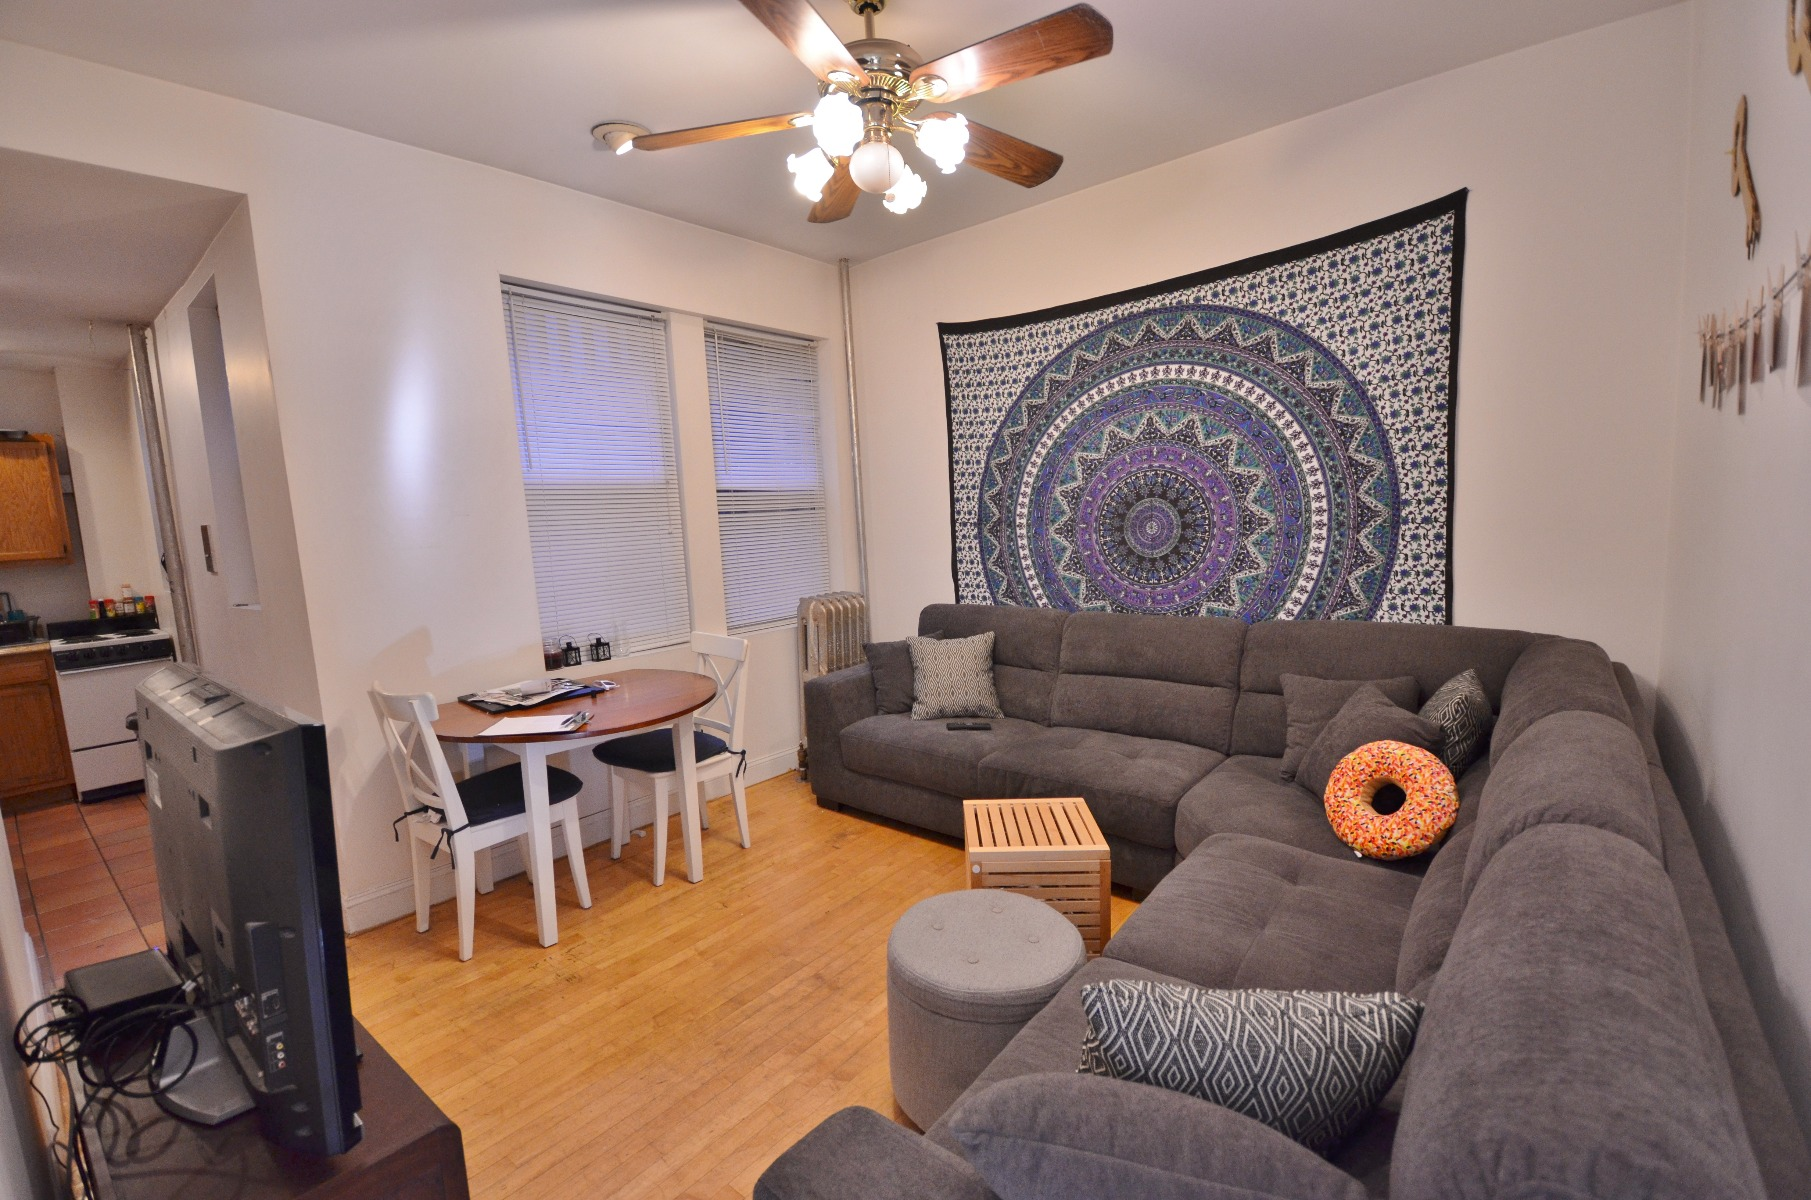 Avail 9/1 - Irresistible Convenient 2 BR on Symphony